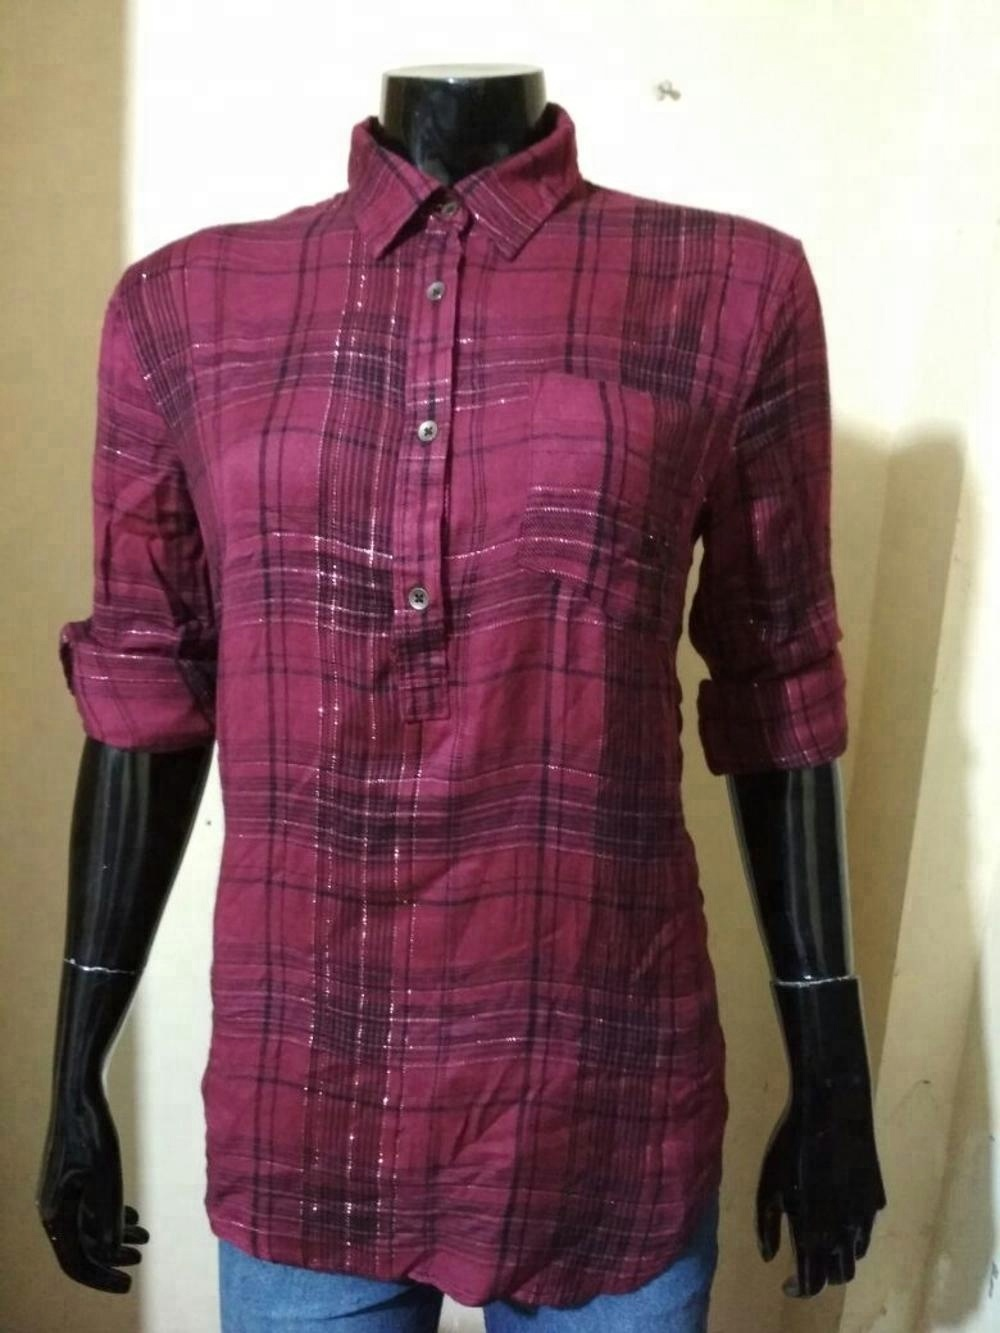 Surplus Shirts Wholesale In Chennai « Alzheimer's Network of Oregon